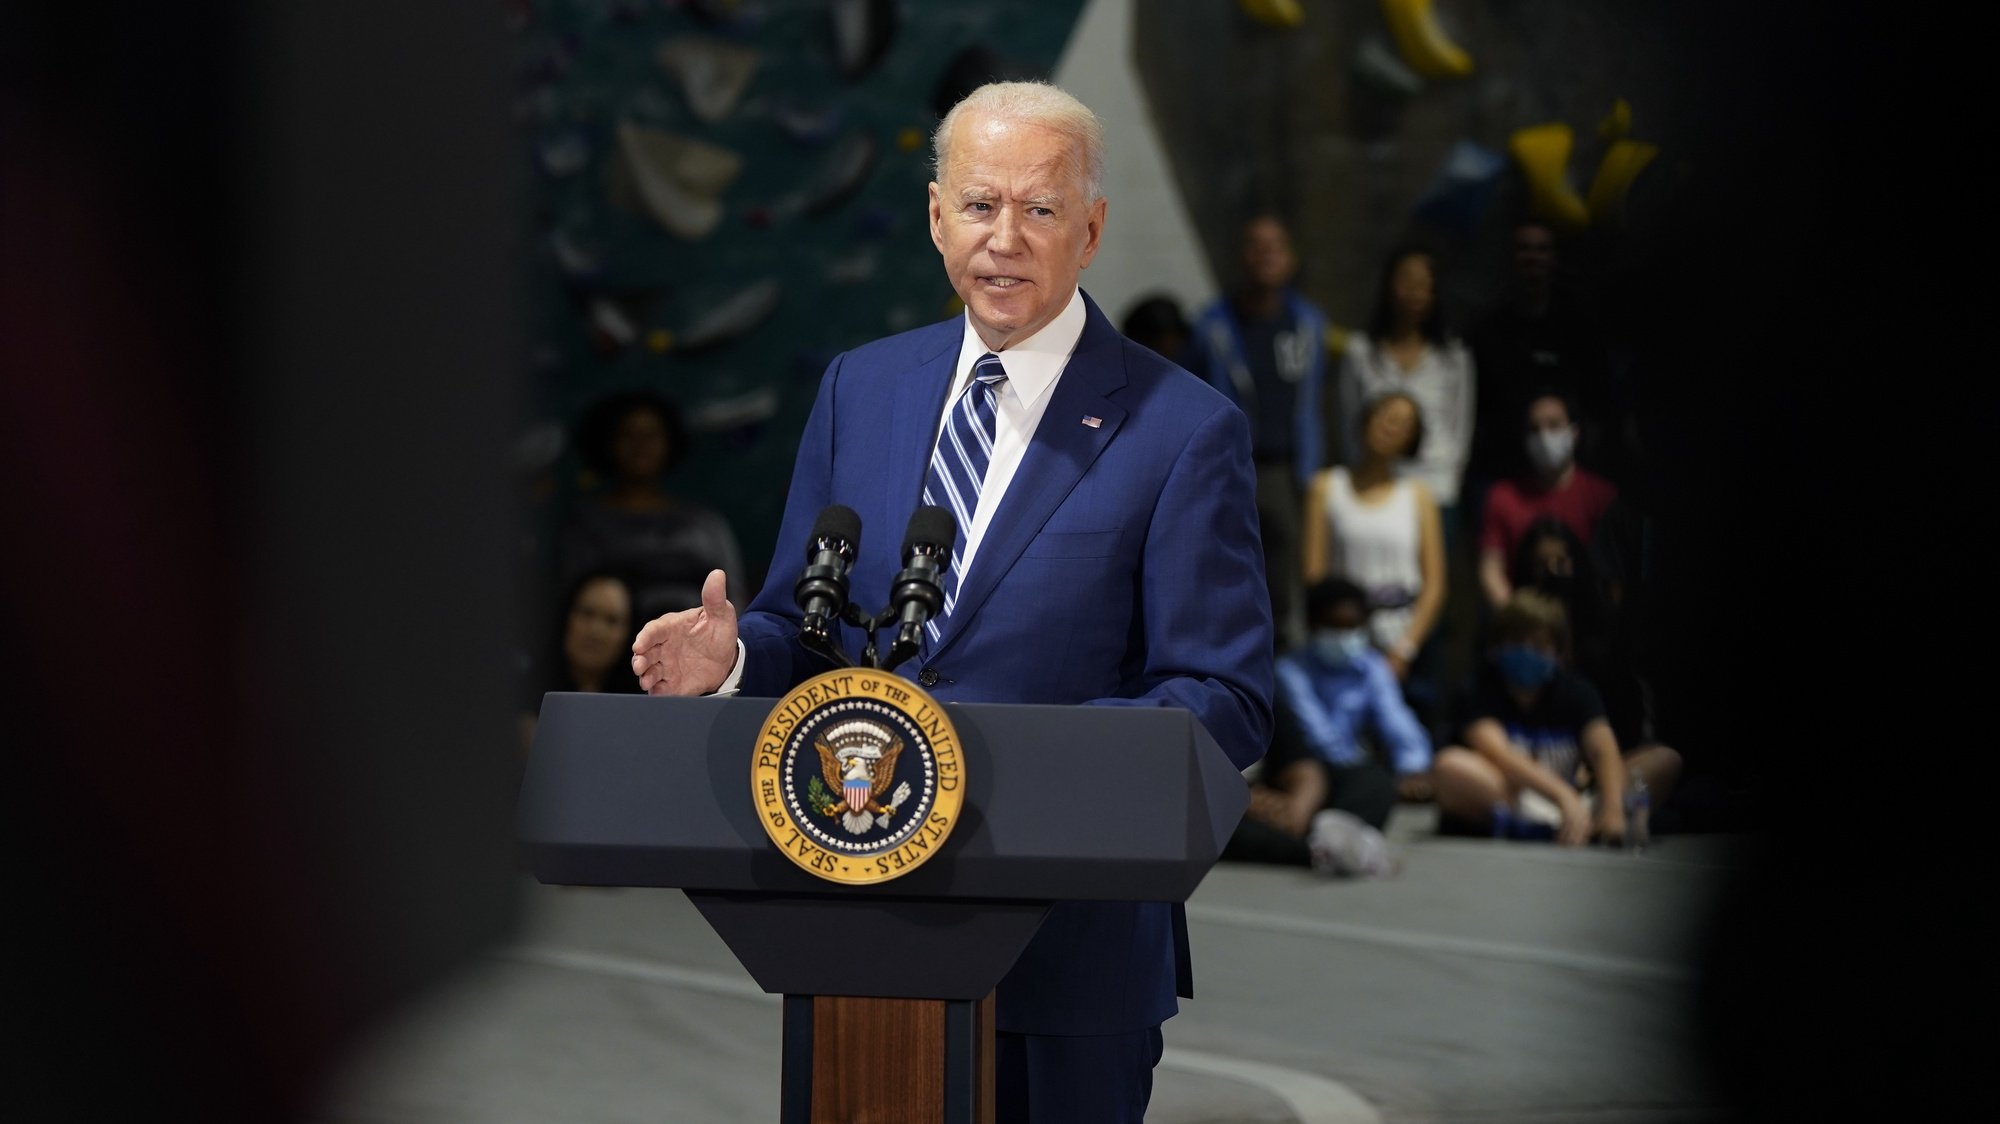 epa09233713 US President Joe Biden delivers remarks at Sportrock Climbing Center in Alexandria, Virginia, USA, 28 May 2021, to celebrate the significant progress Virginia has made in the fight against COVID-19, in partnership with the Biden-Harris Administration.  EPA/Chris Kleponis / POOL